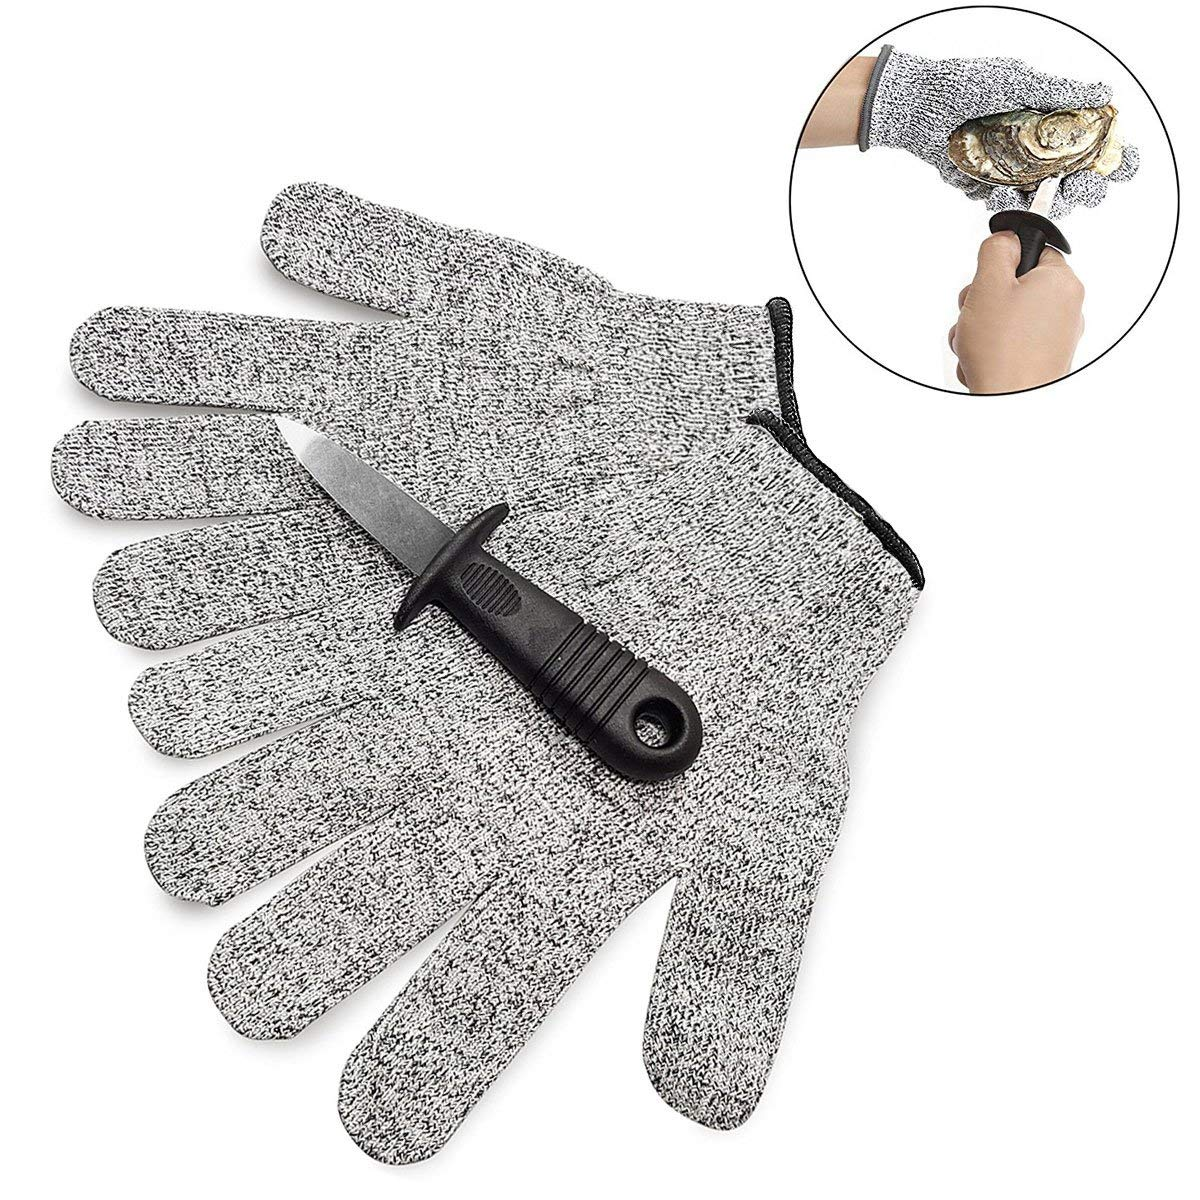 "Oyster Shucking Knife & Cut Resistant Gloves Set Level 5 Protection-2.4"" Oyster Shucker Opener Tool Kit, Stainless Steel Clam Shellfish Seafood Opener with Non Slip Handle."